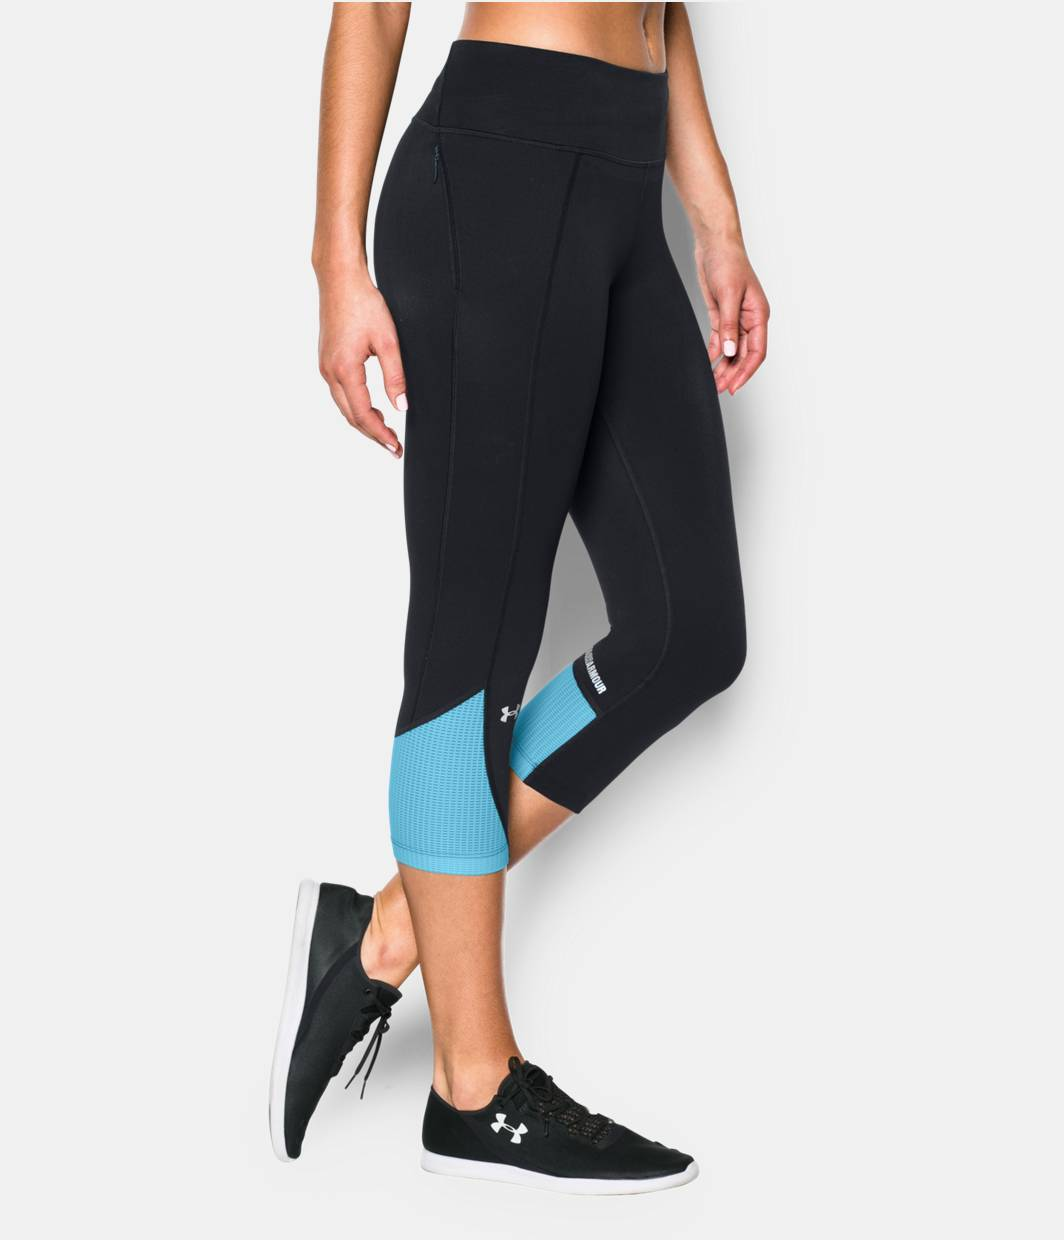 Running Capri Pants